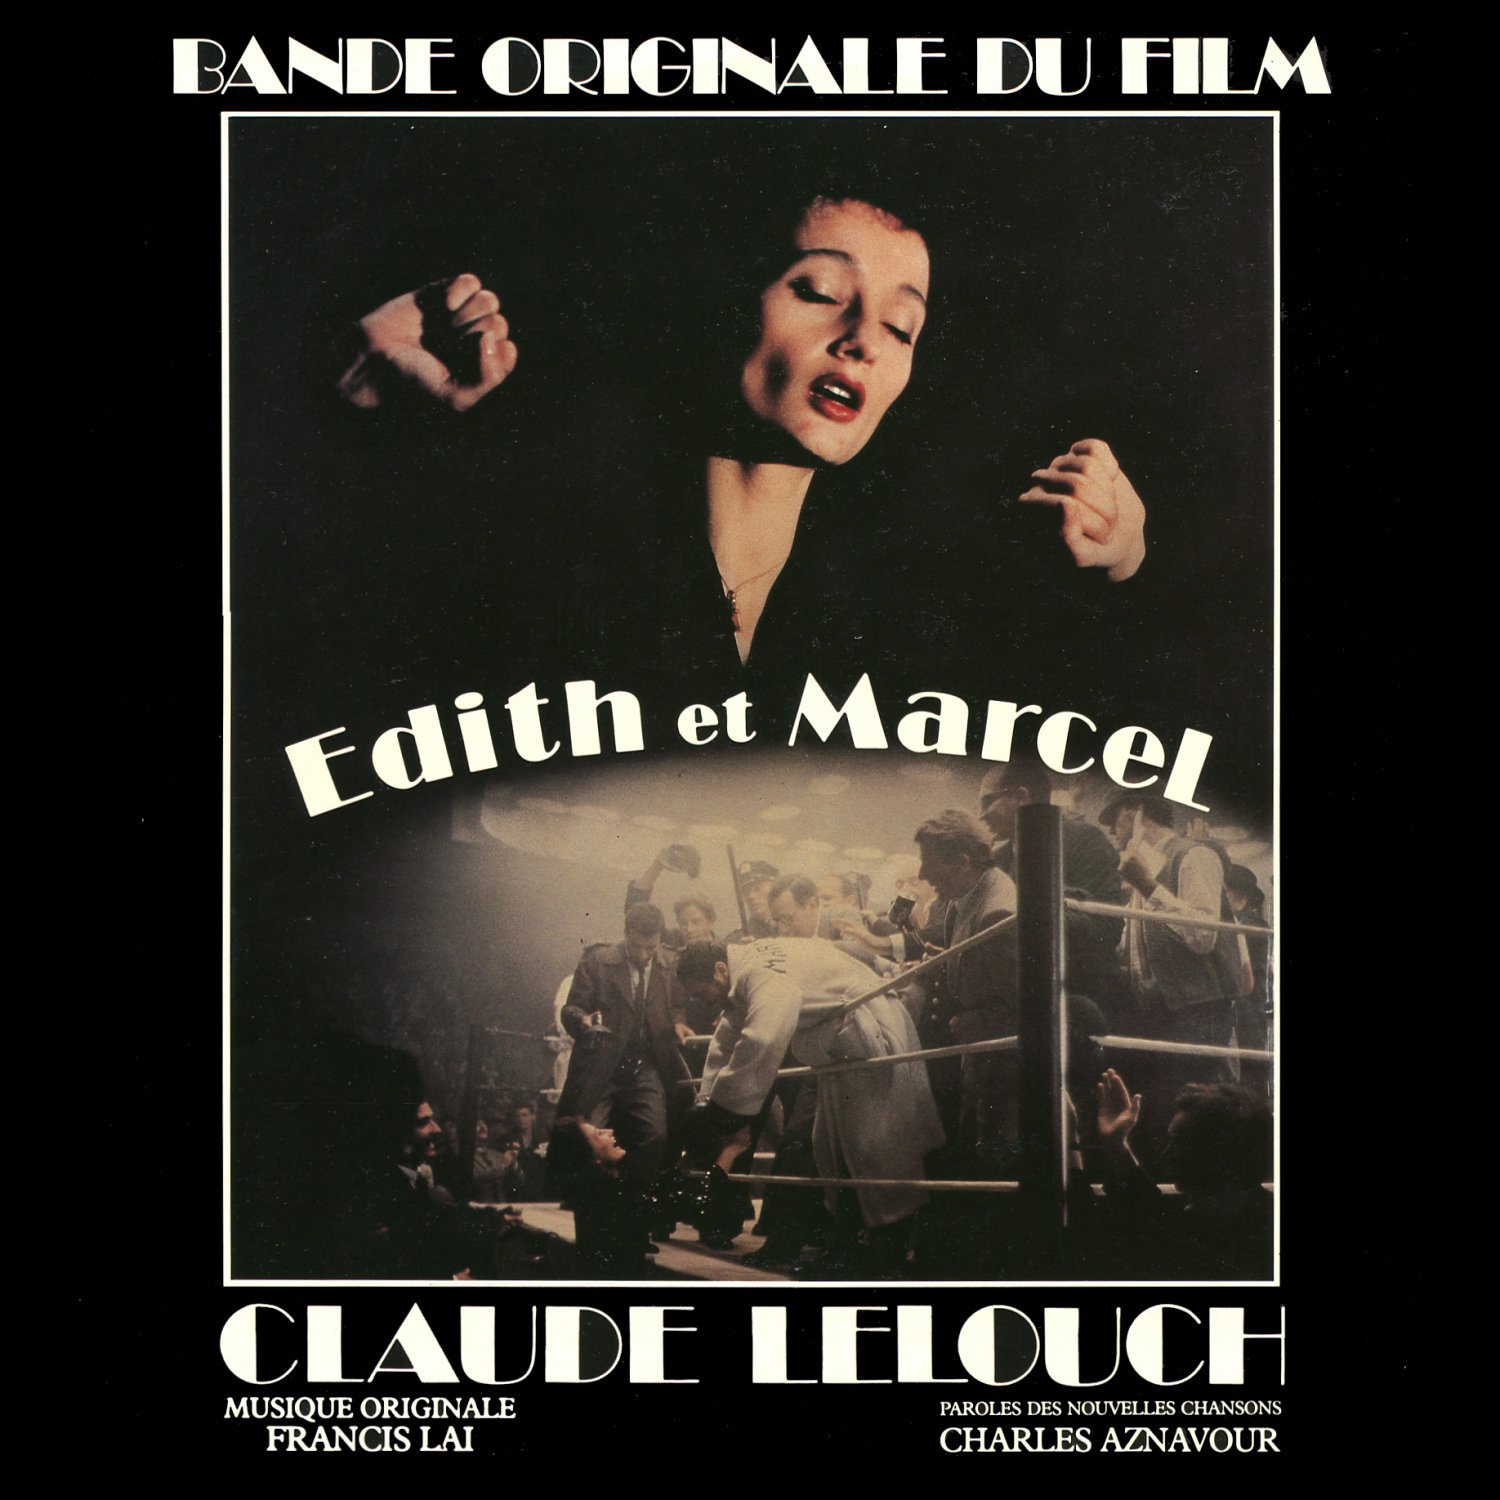 Edith And Marcel - Original Soundtrack, Francis Lai OST LP/CD et